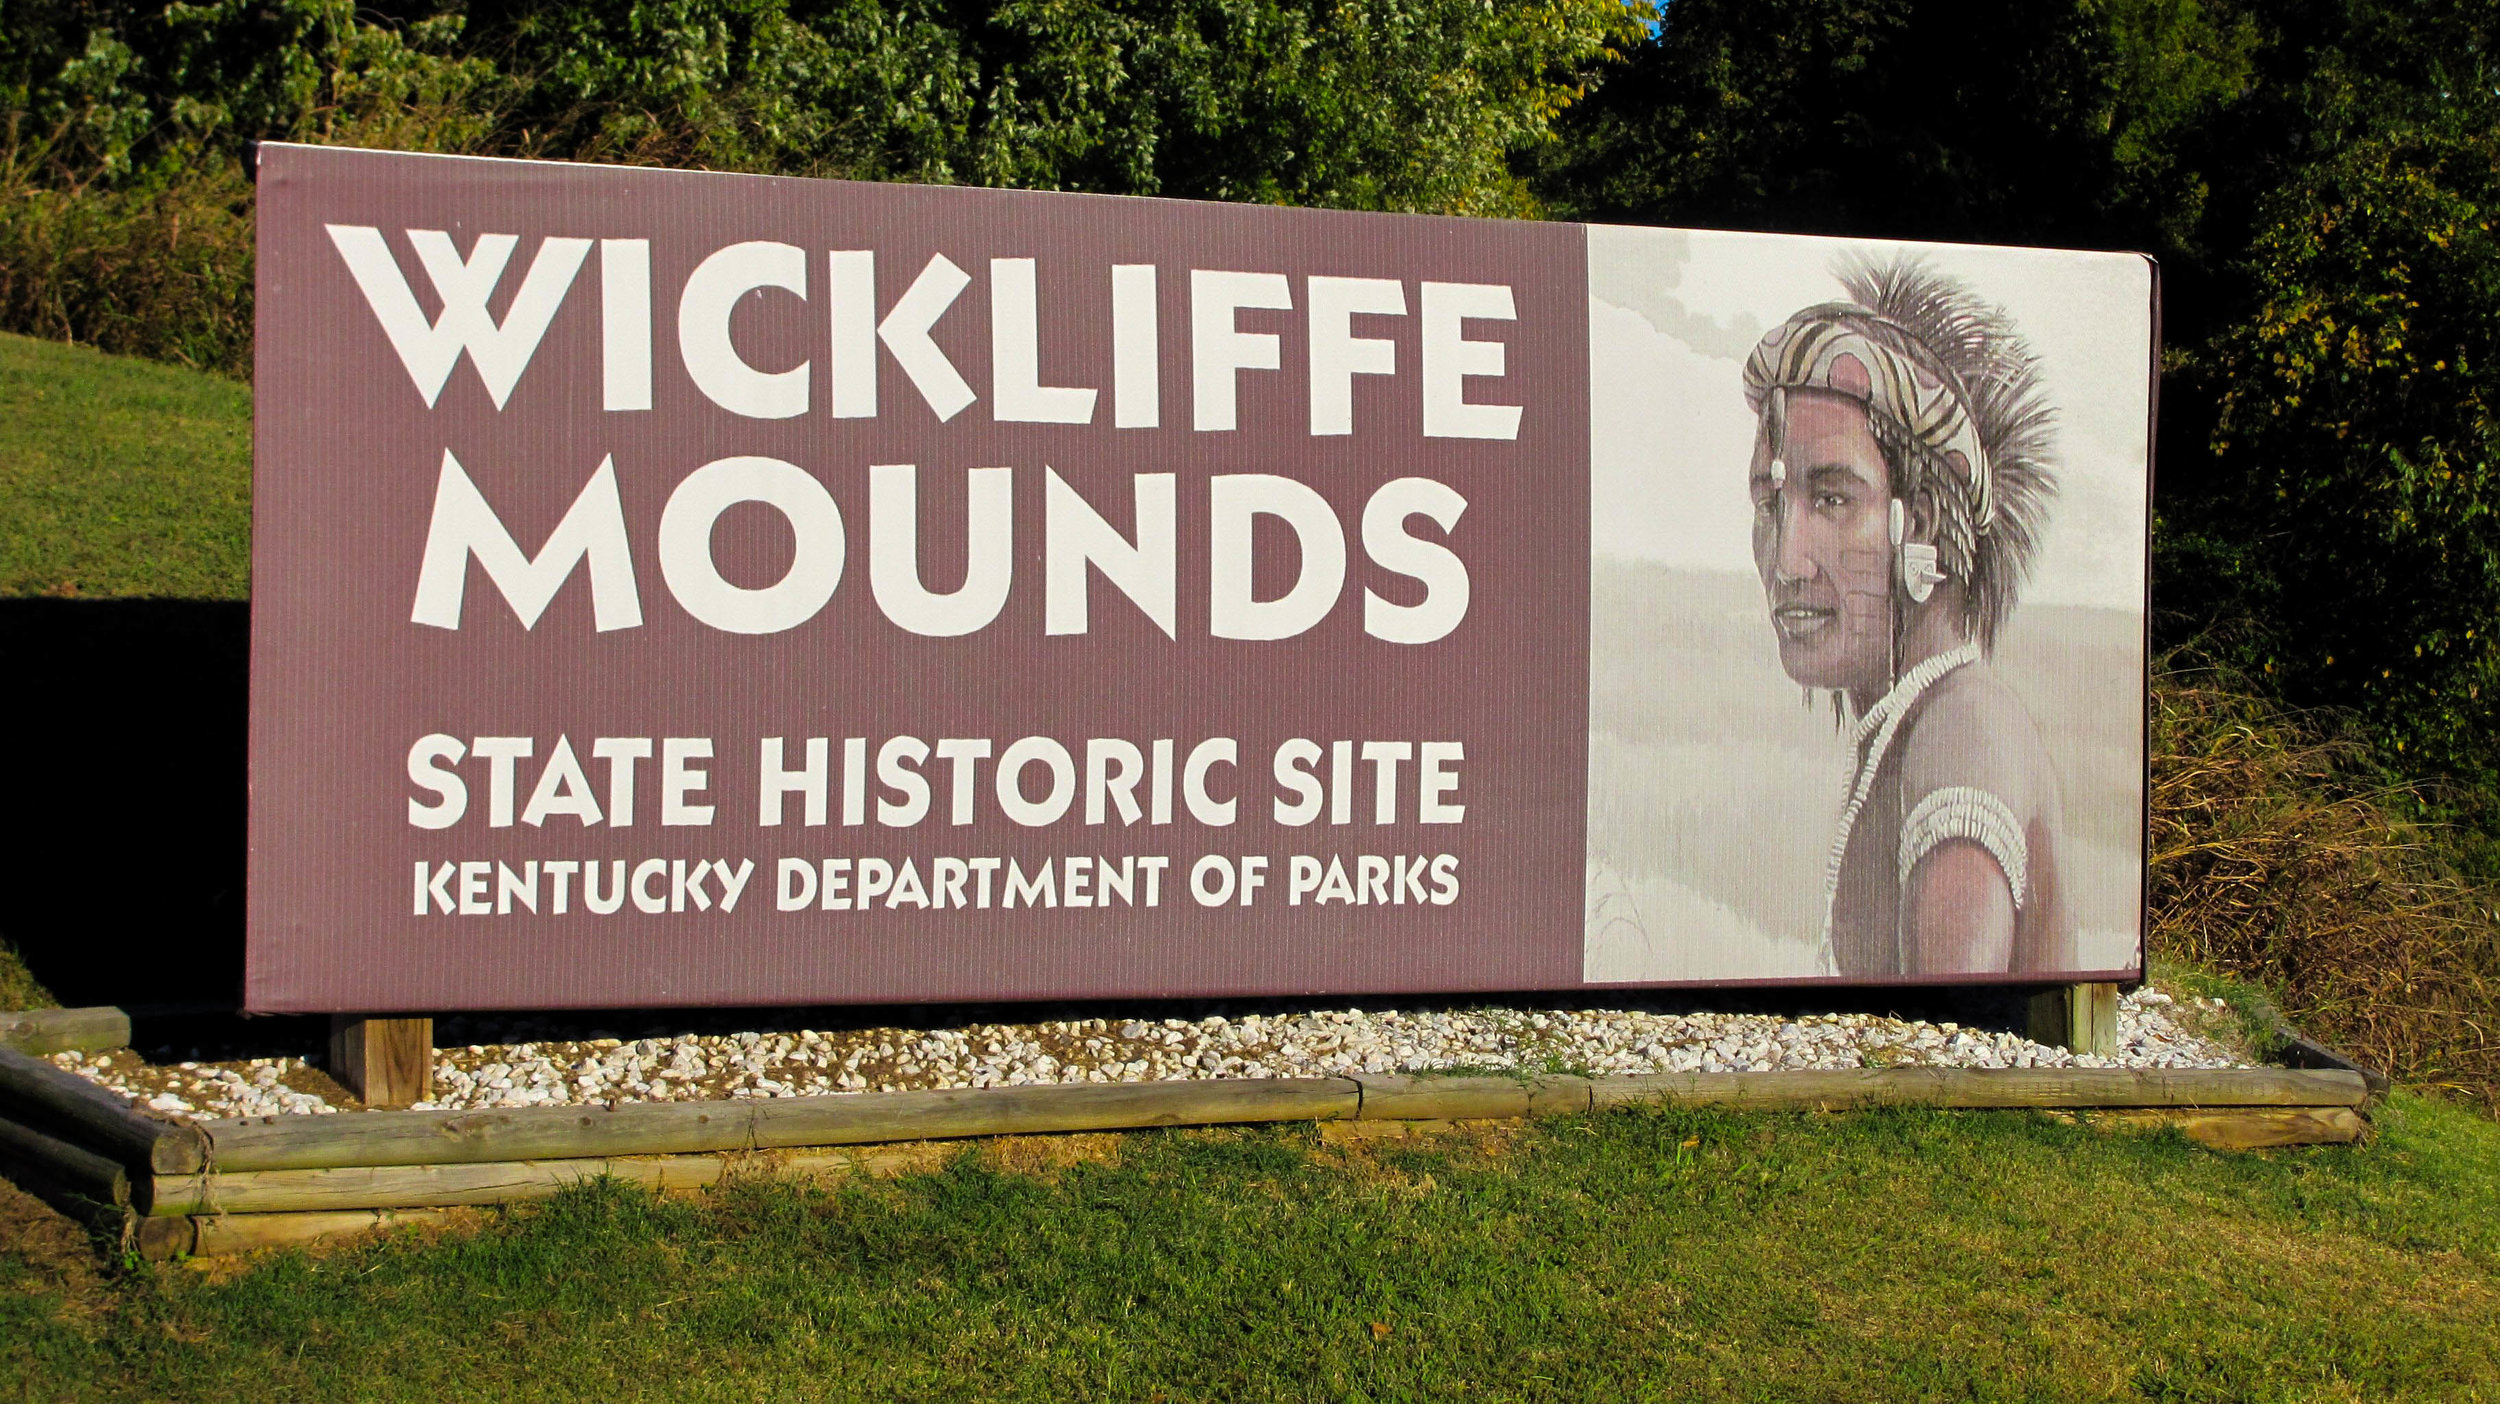 Wickliffe Mounds State Historic Site Wickliffe, Kentucky